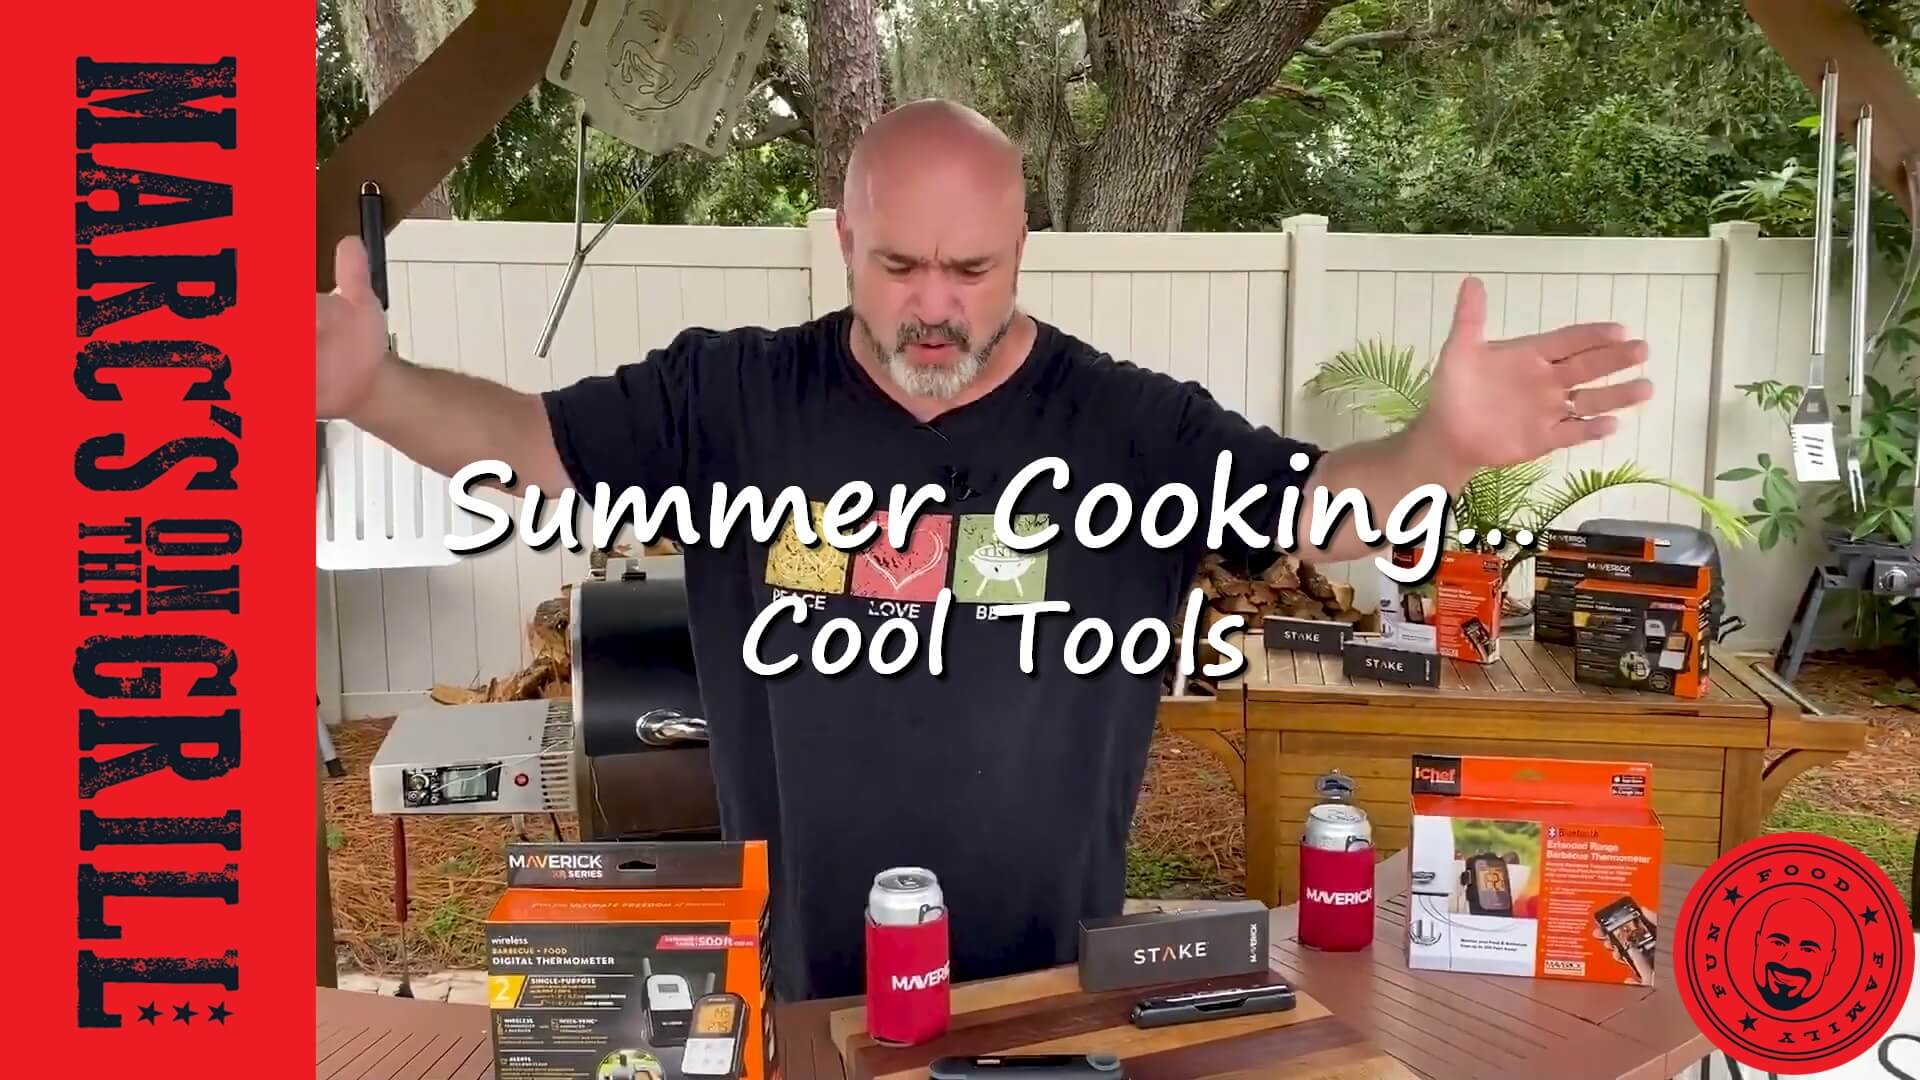 Maverick Digital Food Thermometers for grilling, smoking and BBQ